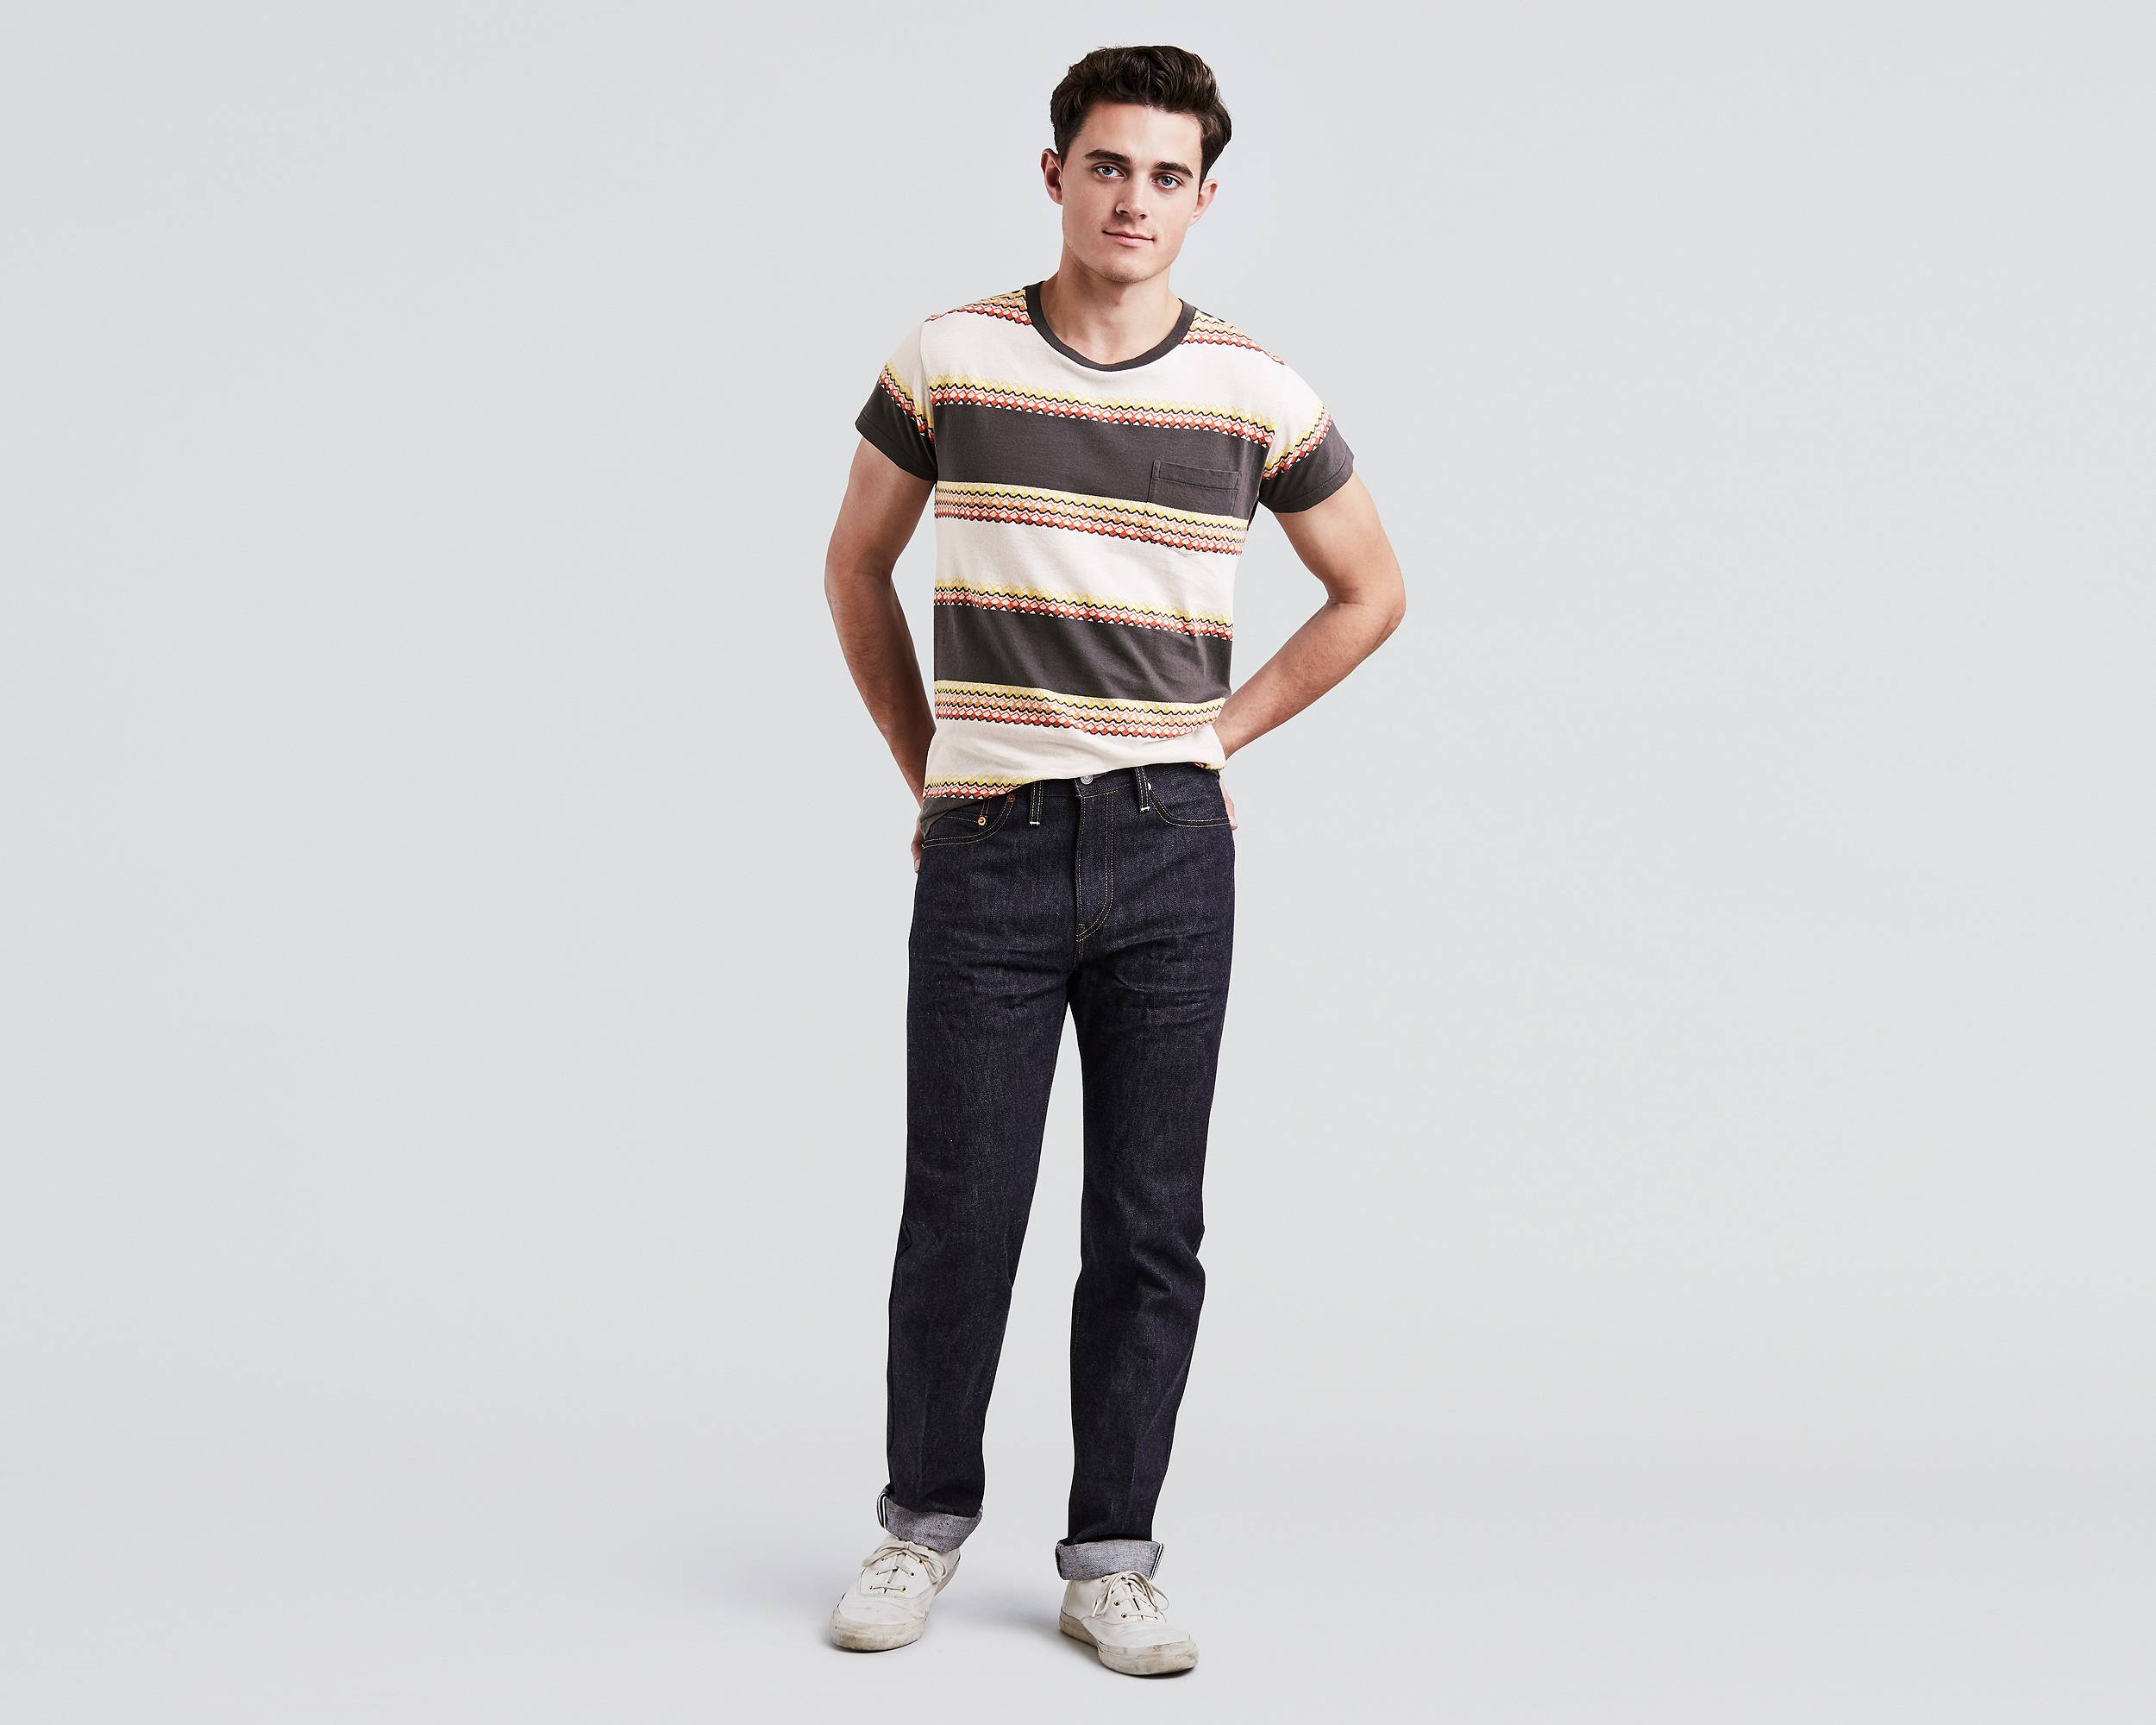 Levi's 1954 501s - Made in their last standing American denim factory, these Levi's are as close as you can get to the OG: made in America in a slimmer cut.*